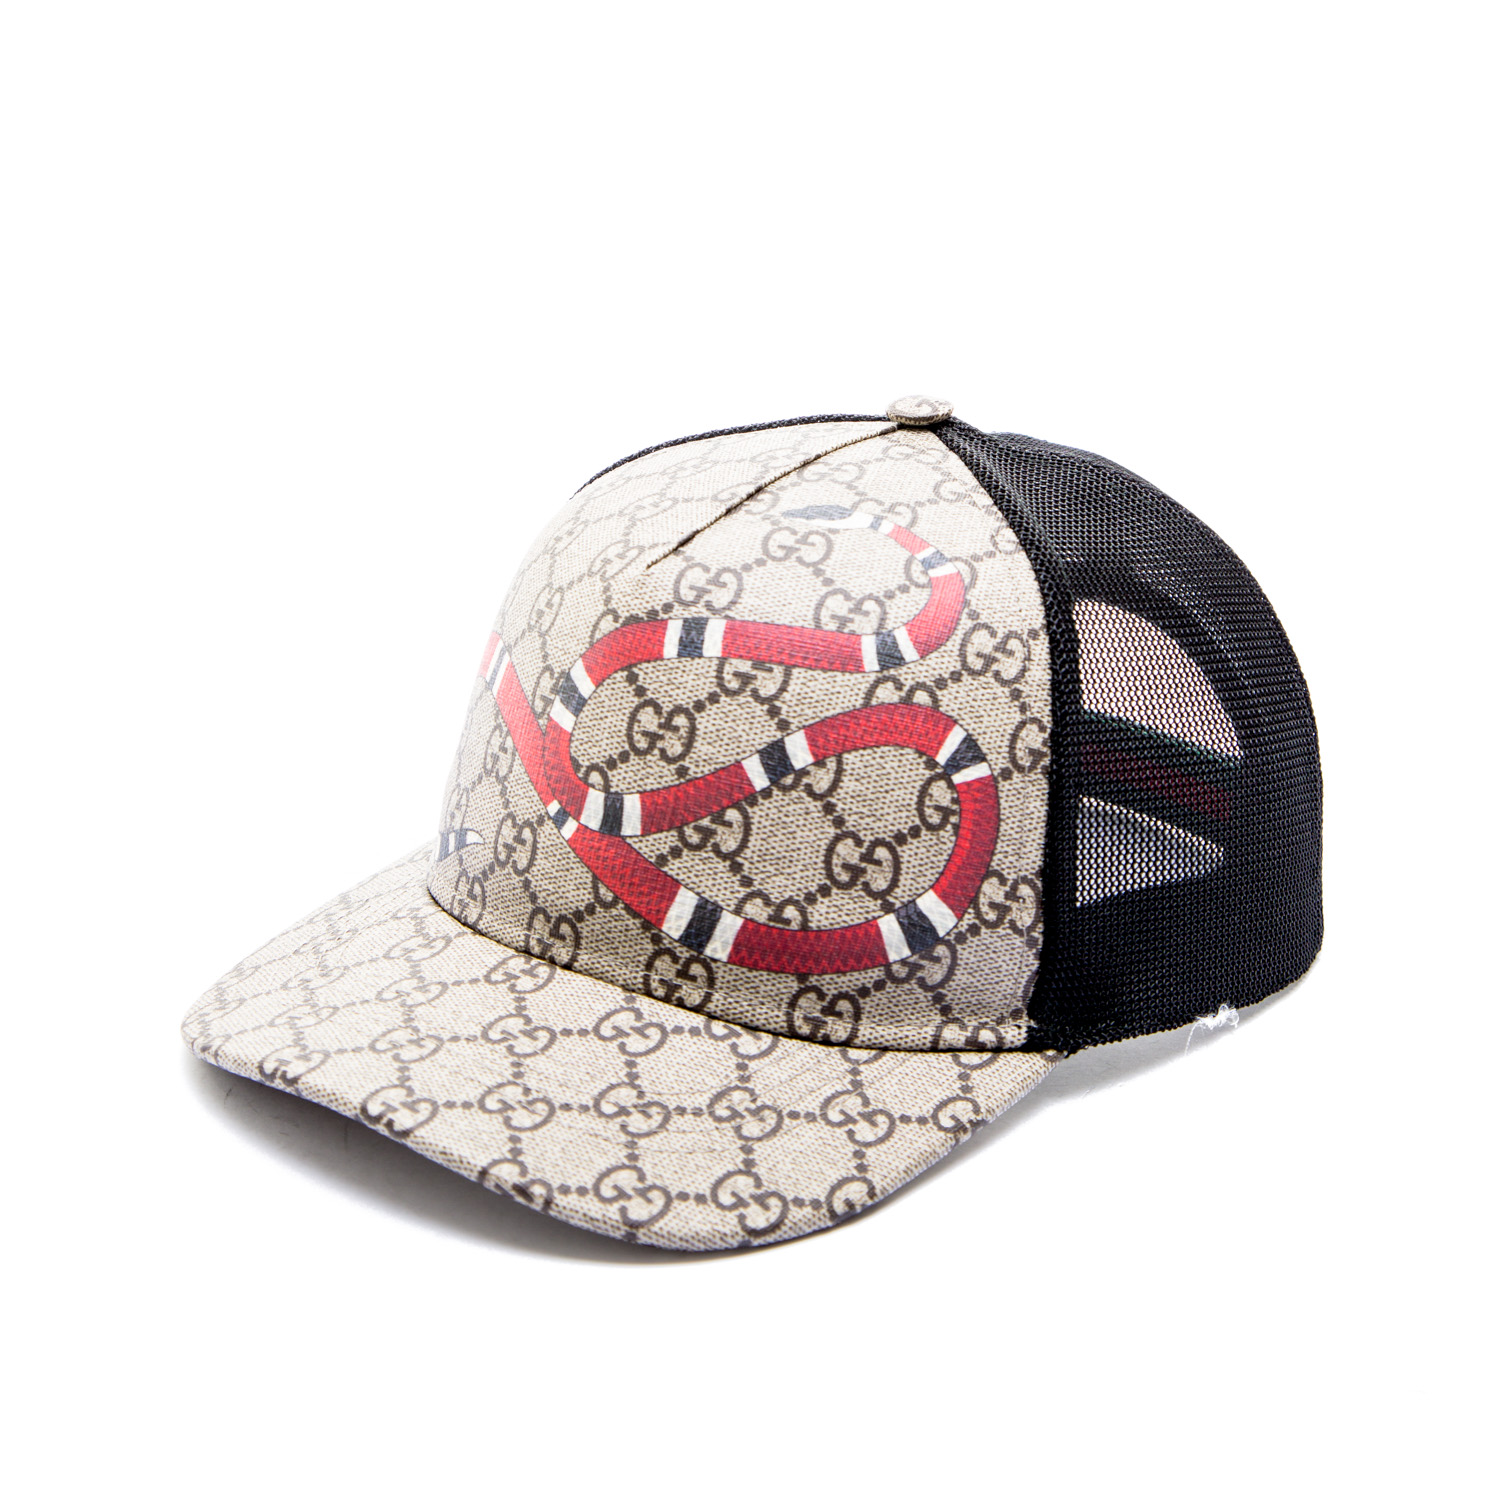 29842d94f3a You may also like. New. Gucci hat baseball rap